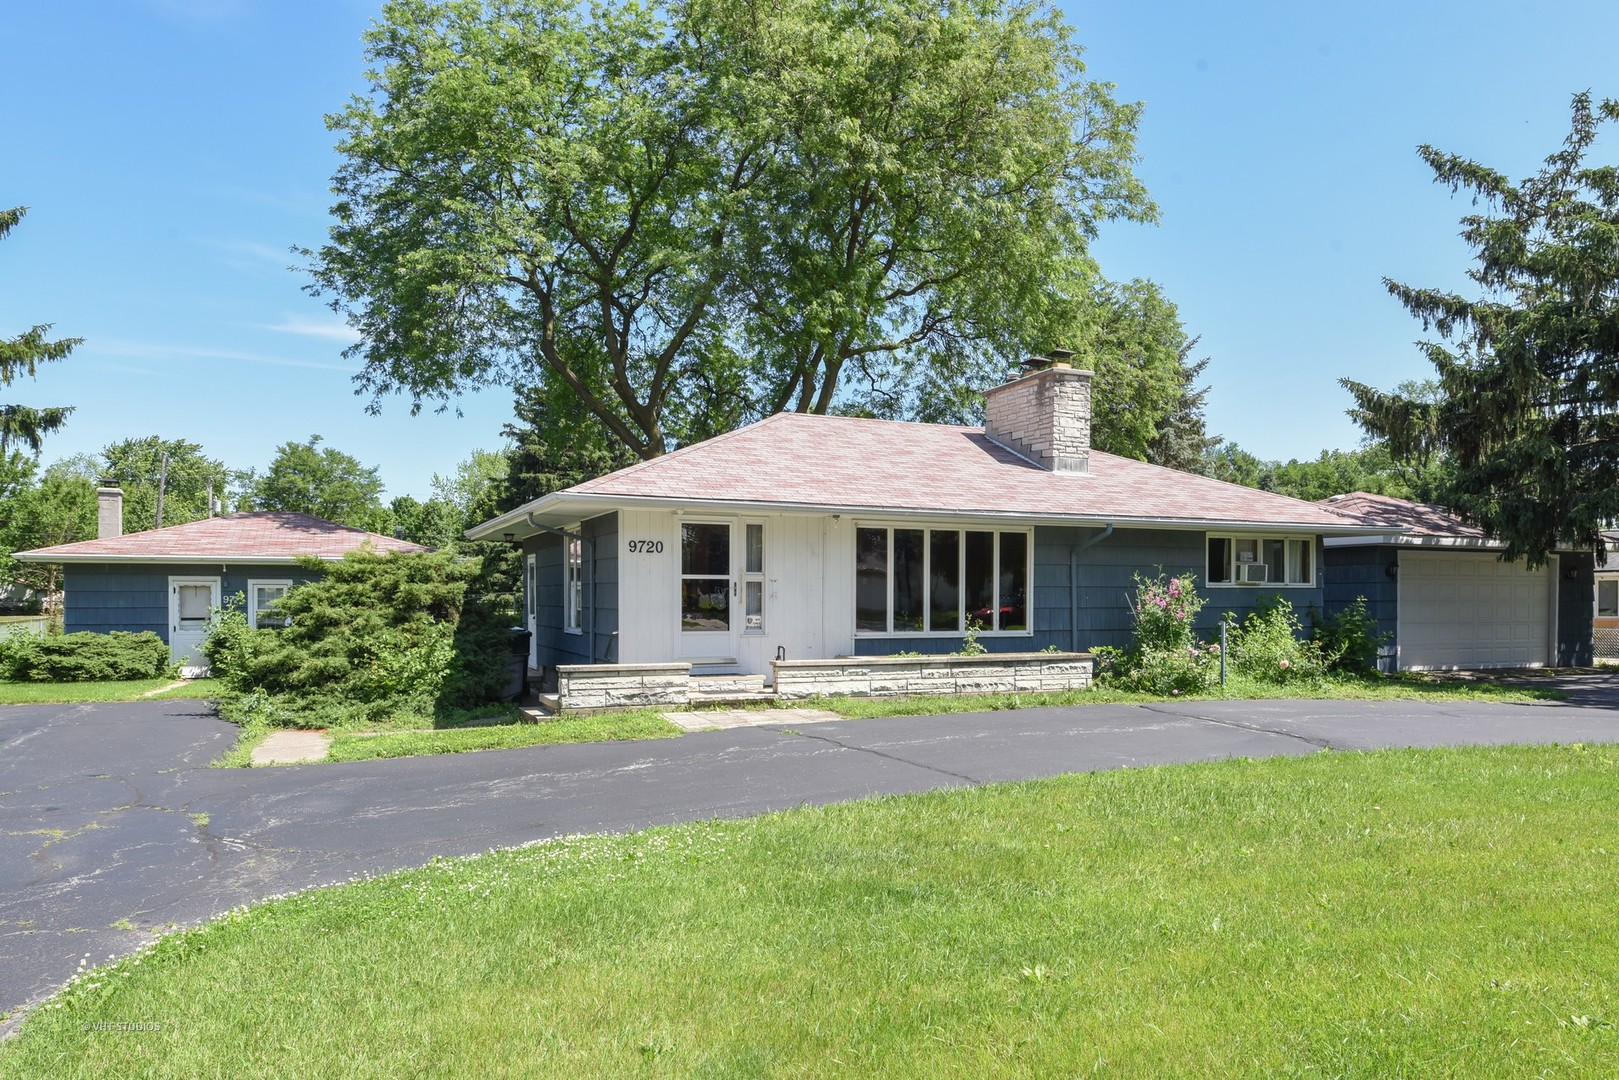 9720 West 58th Street, one of homes for sale in Countryside